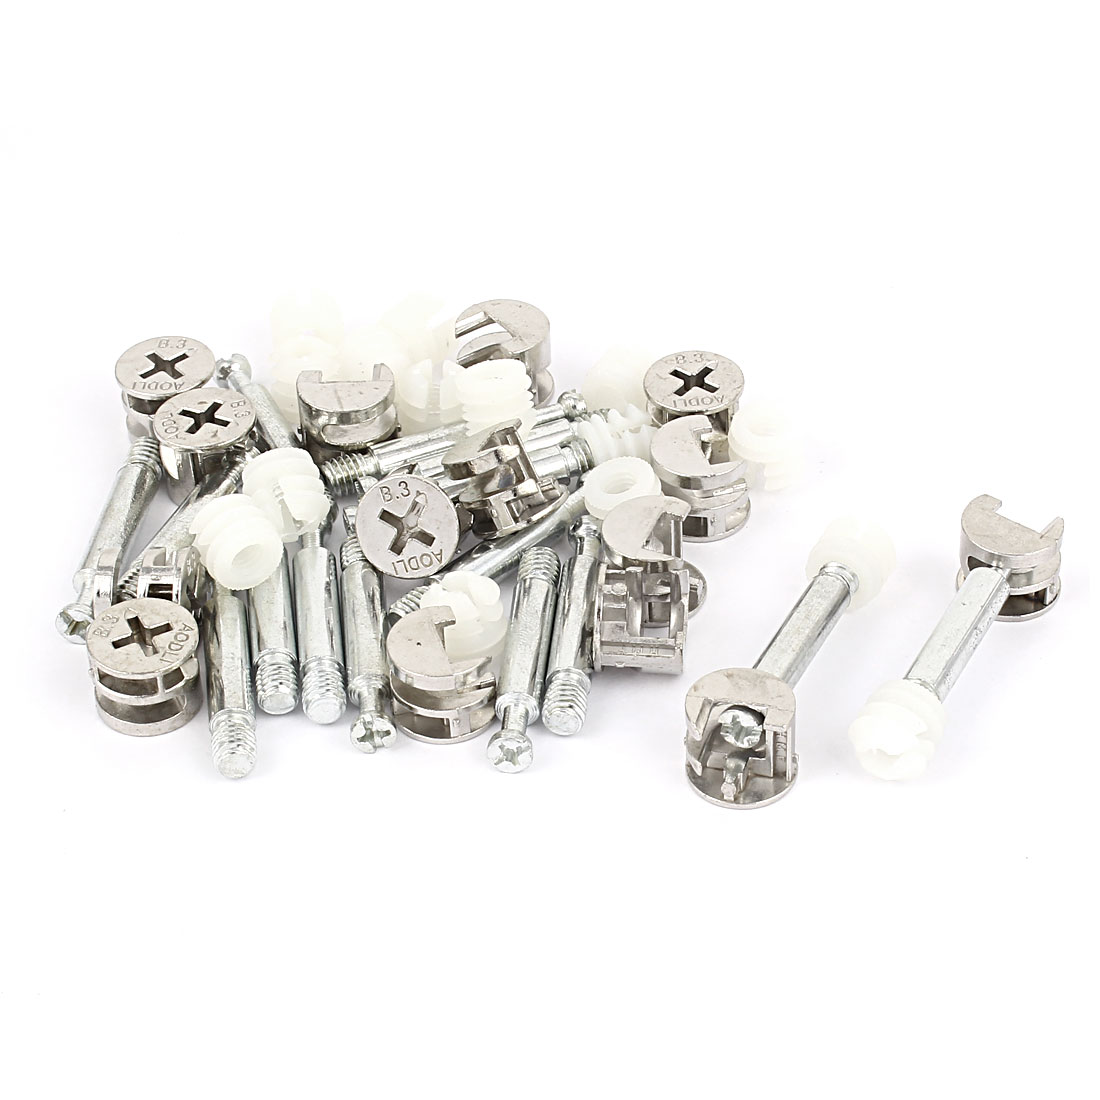 15 Sets Furniture Fixing Screw Side Cam Bolt Fitting Dowel Pre-inserted Nut Connector